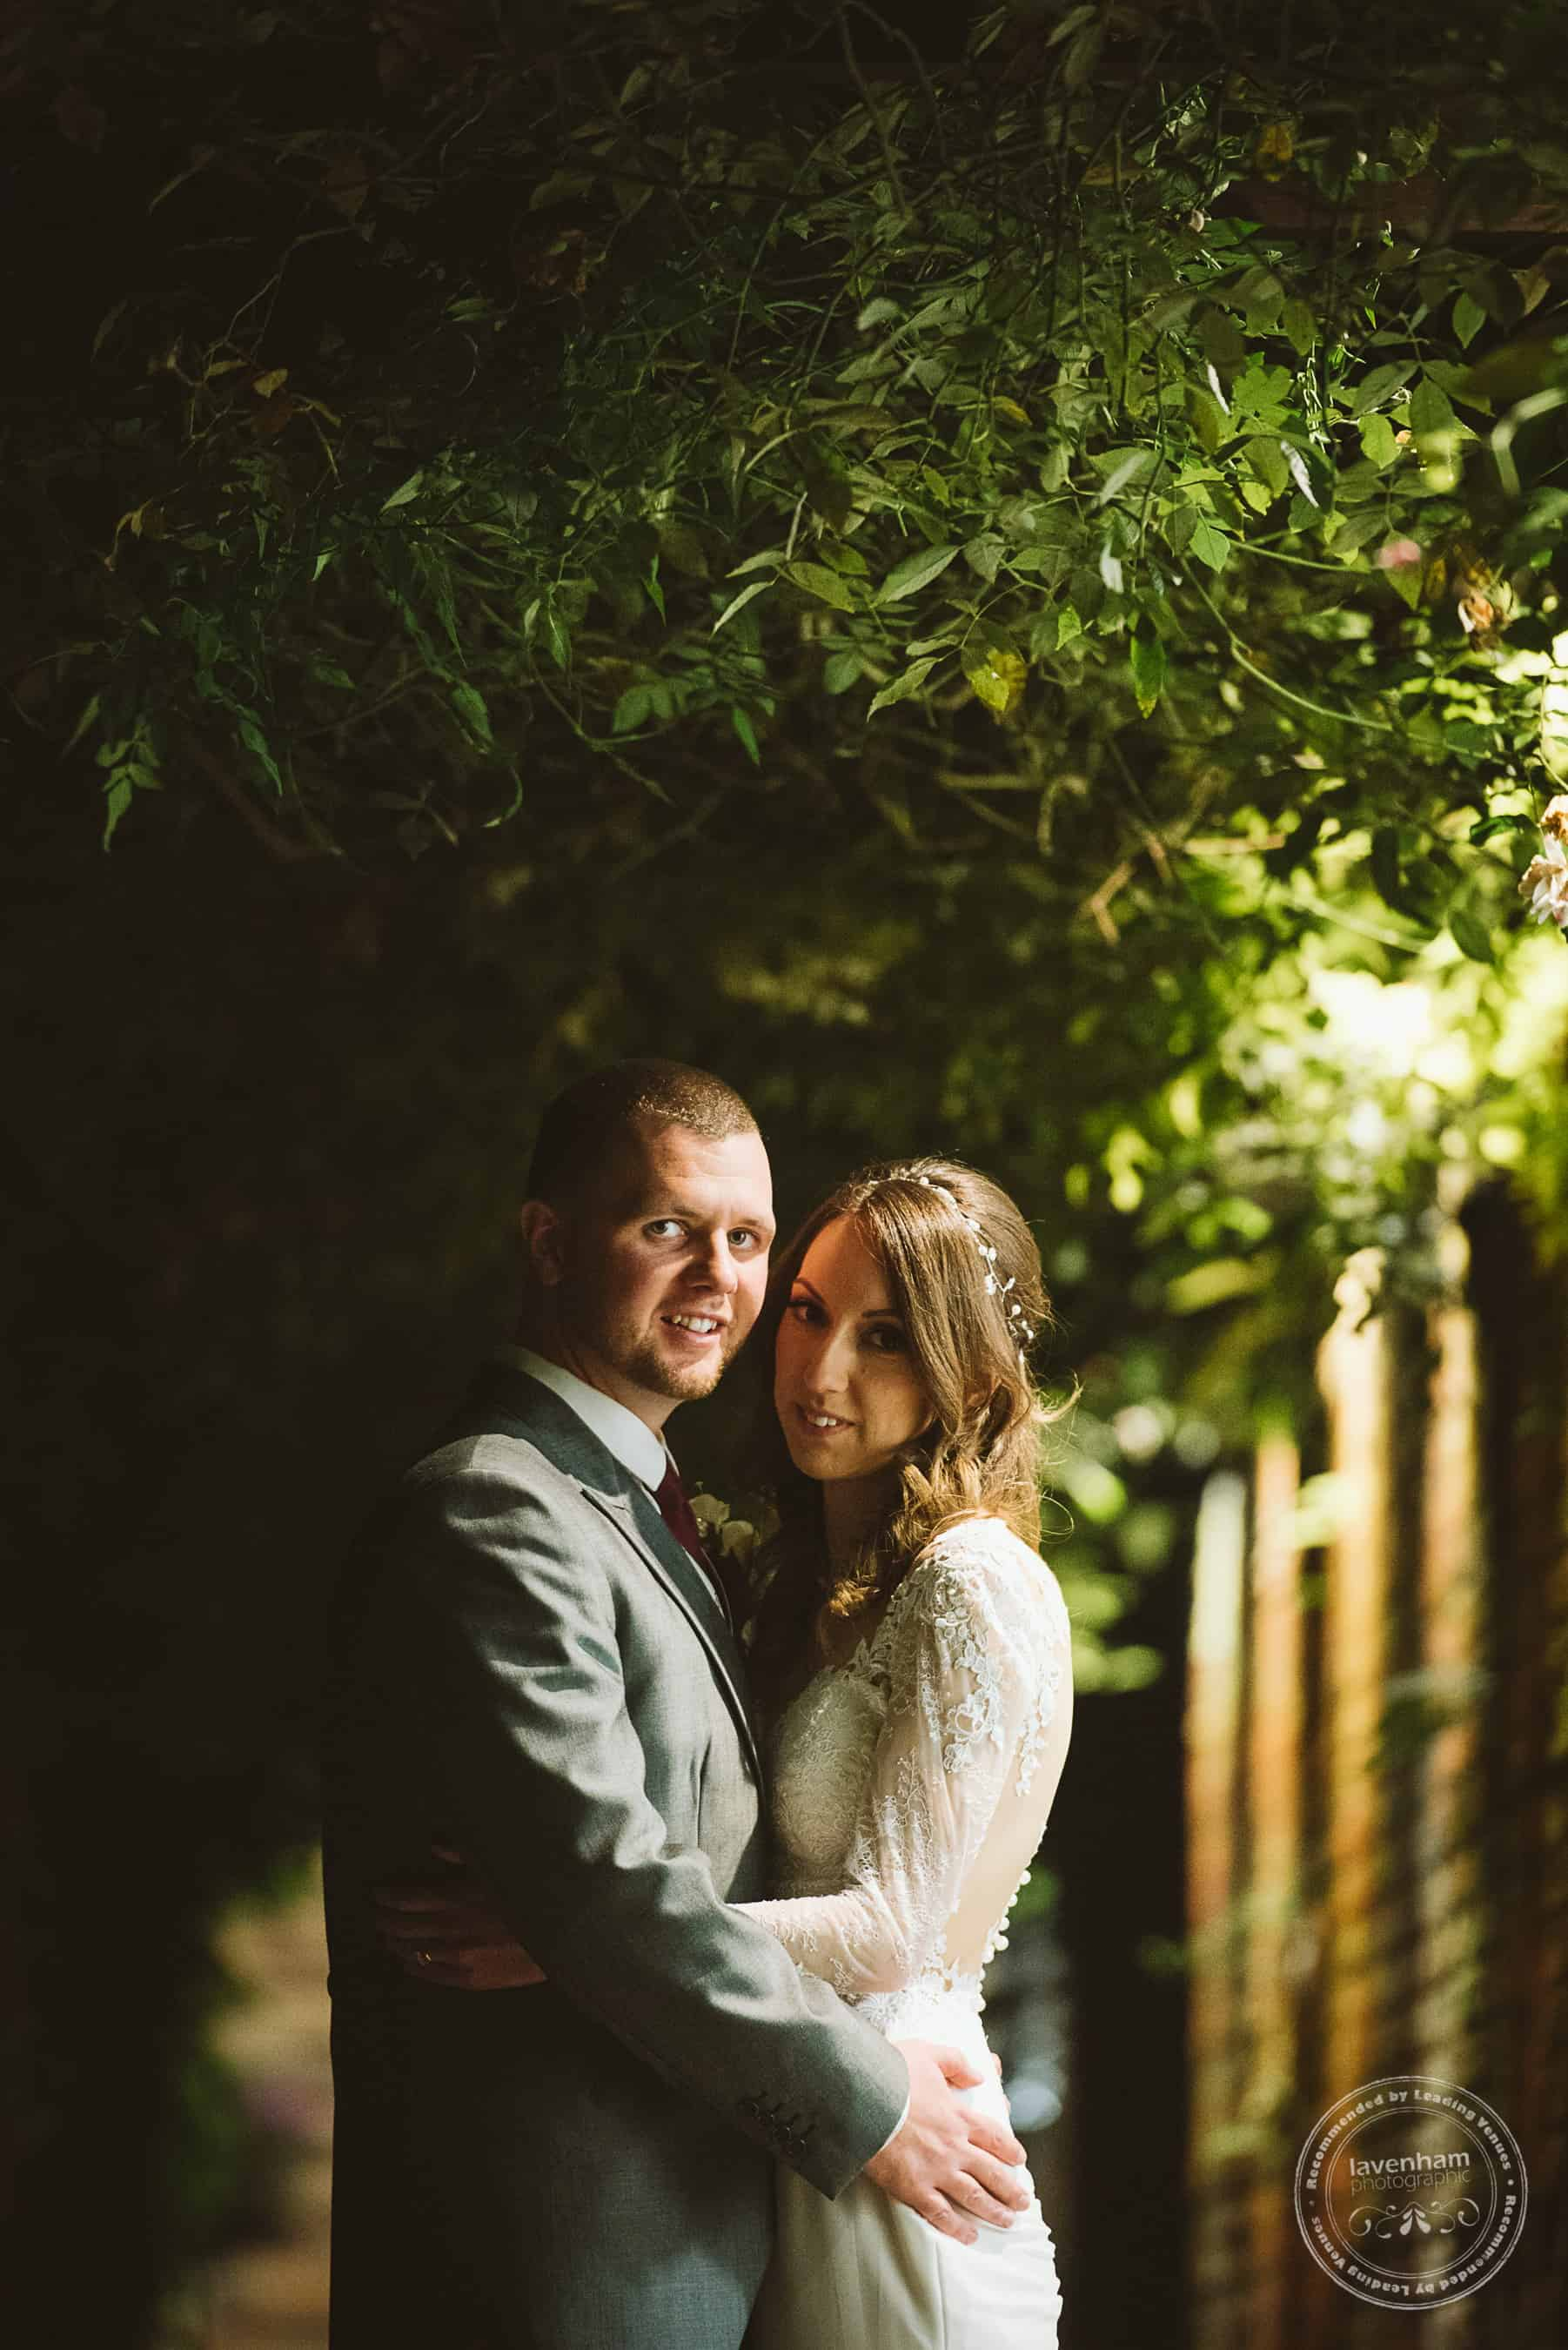 041118 Woodhall Manor Wedding Photography by Lavenham Photographic 114